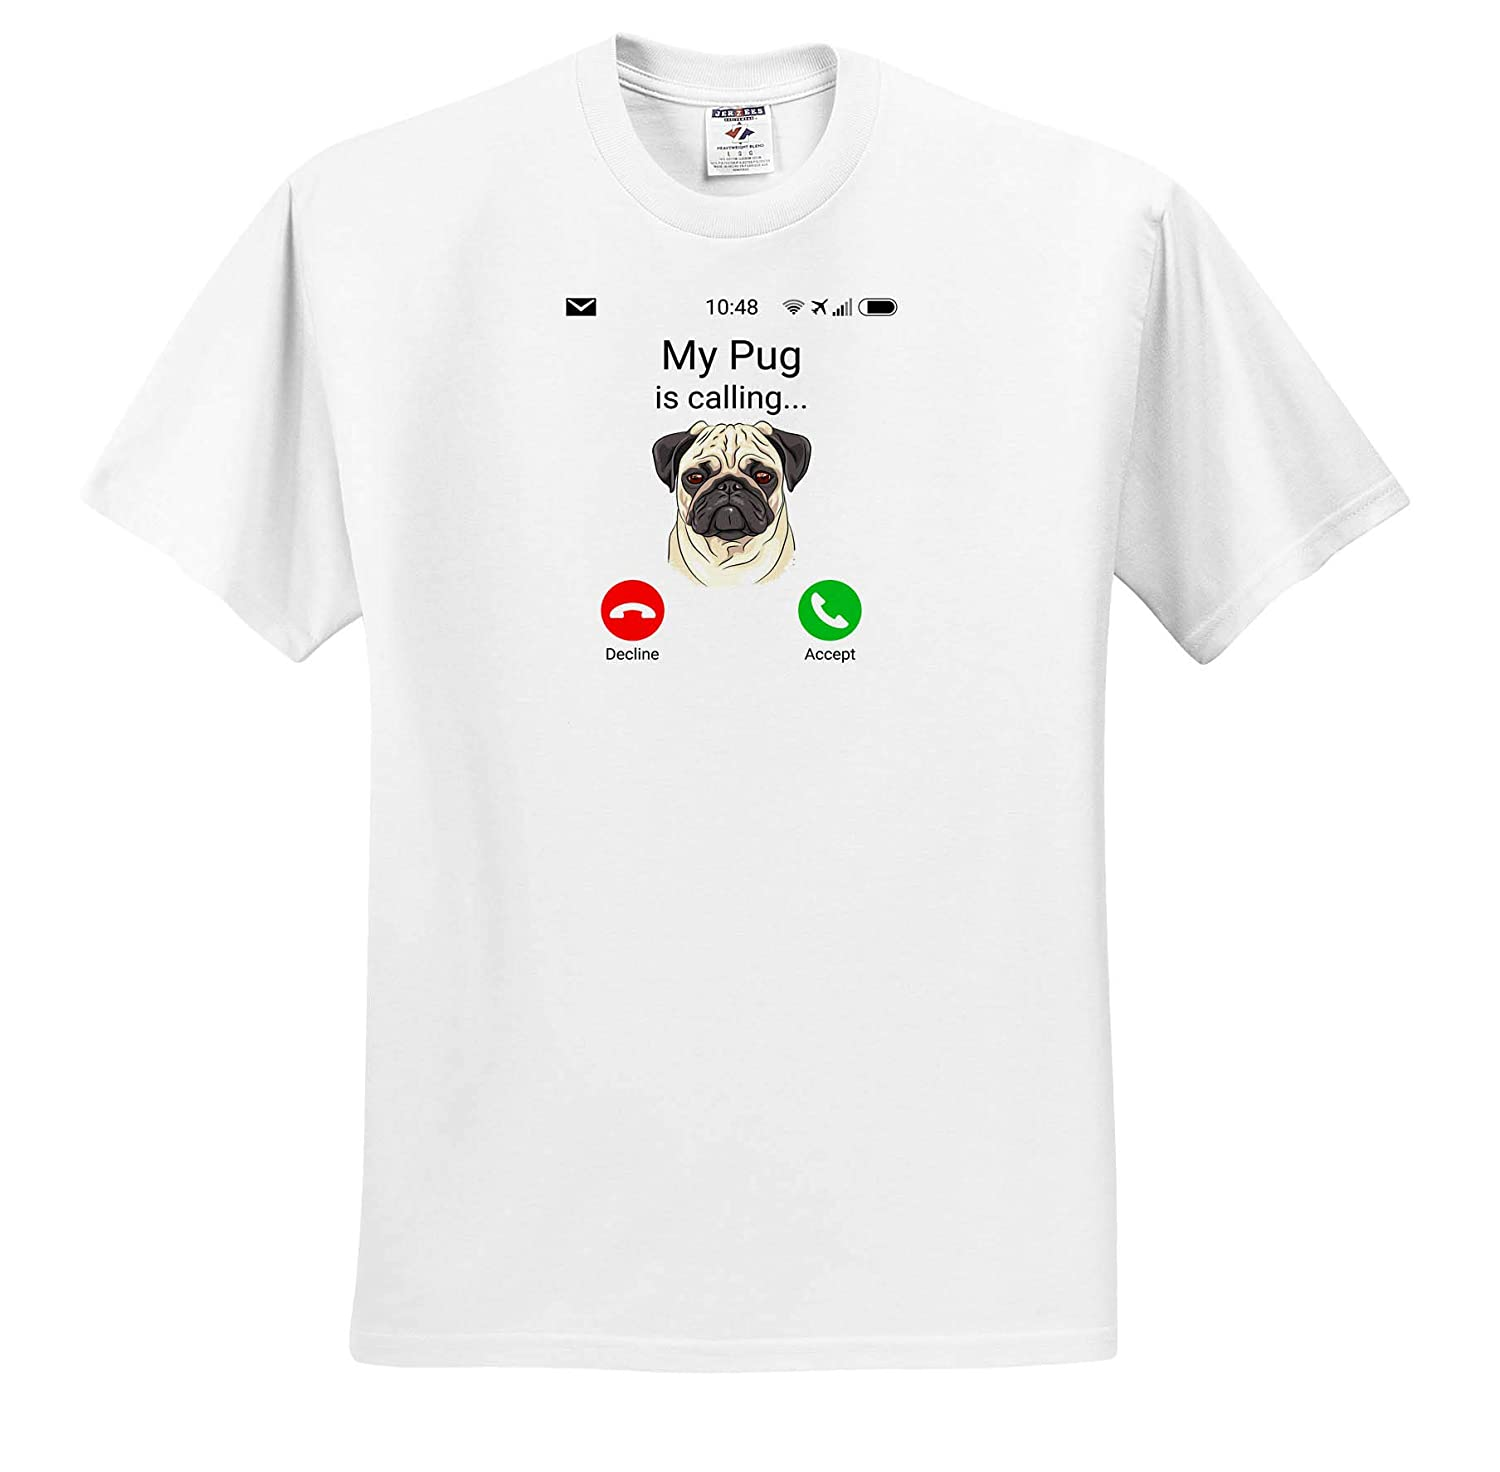 ts/_316053 3dRose Carsten Reisinger My Pug is Calling Funny Incoming Phone Call Adult T-Shirt XL Illustrations